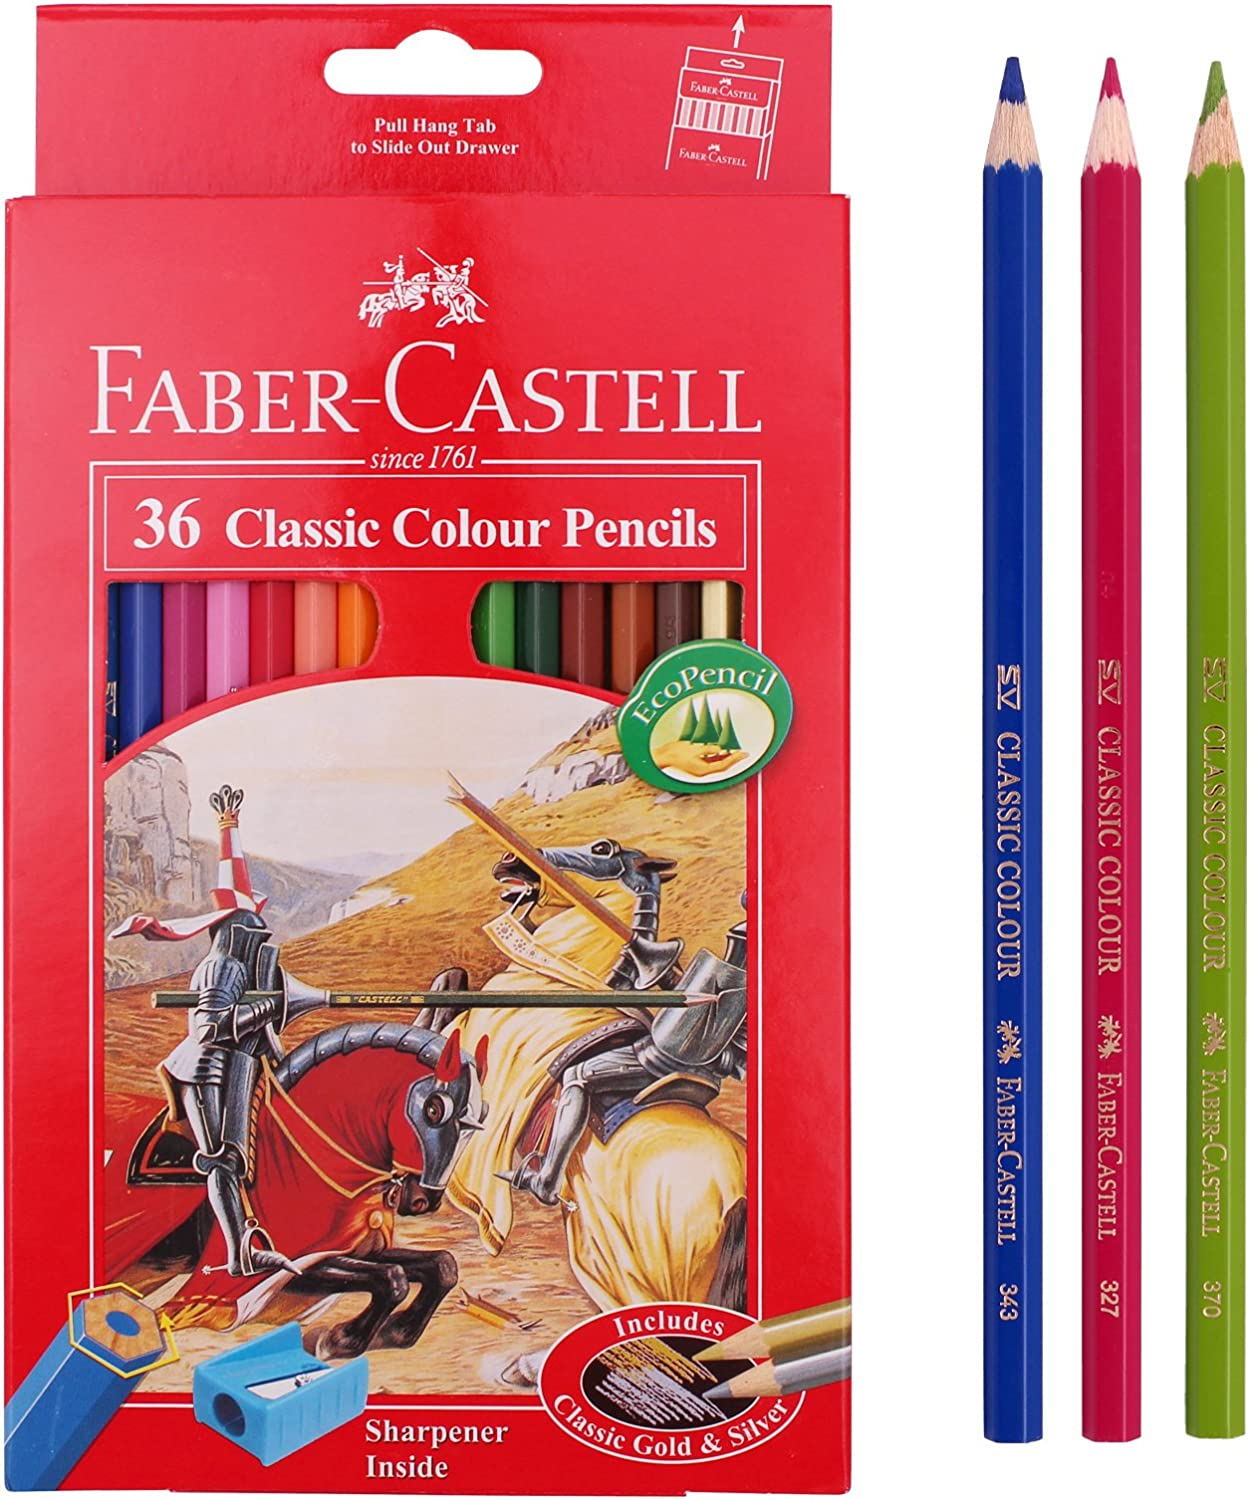 Faber Castell 12 Coloured Drawing Eco Pencils Stationary No Sharpener